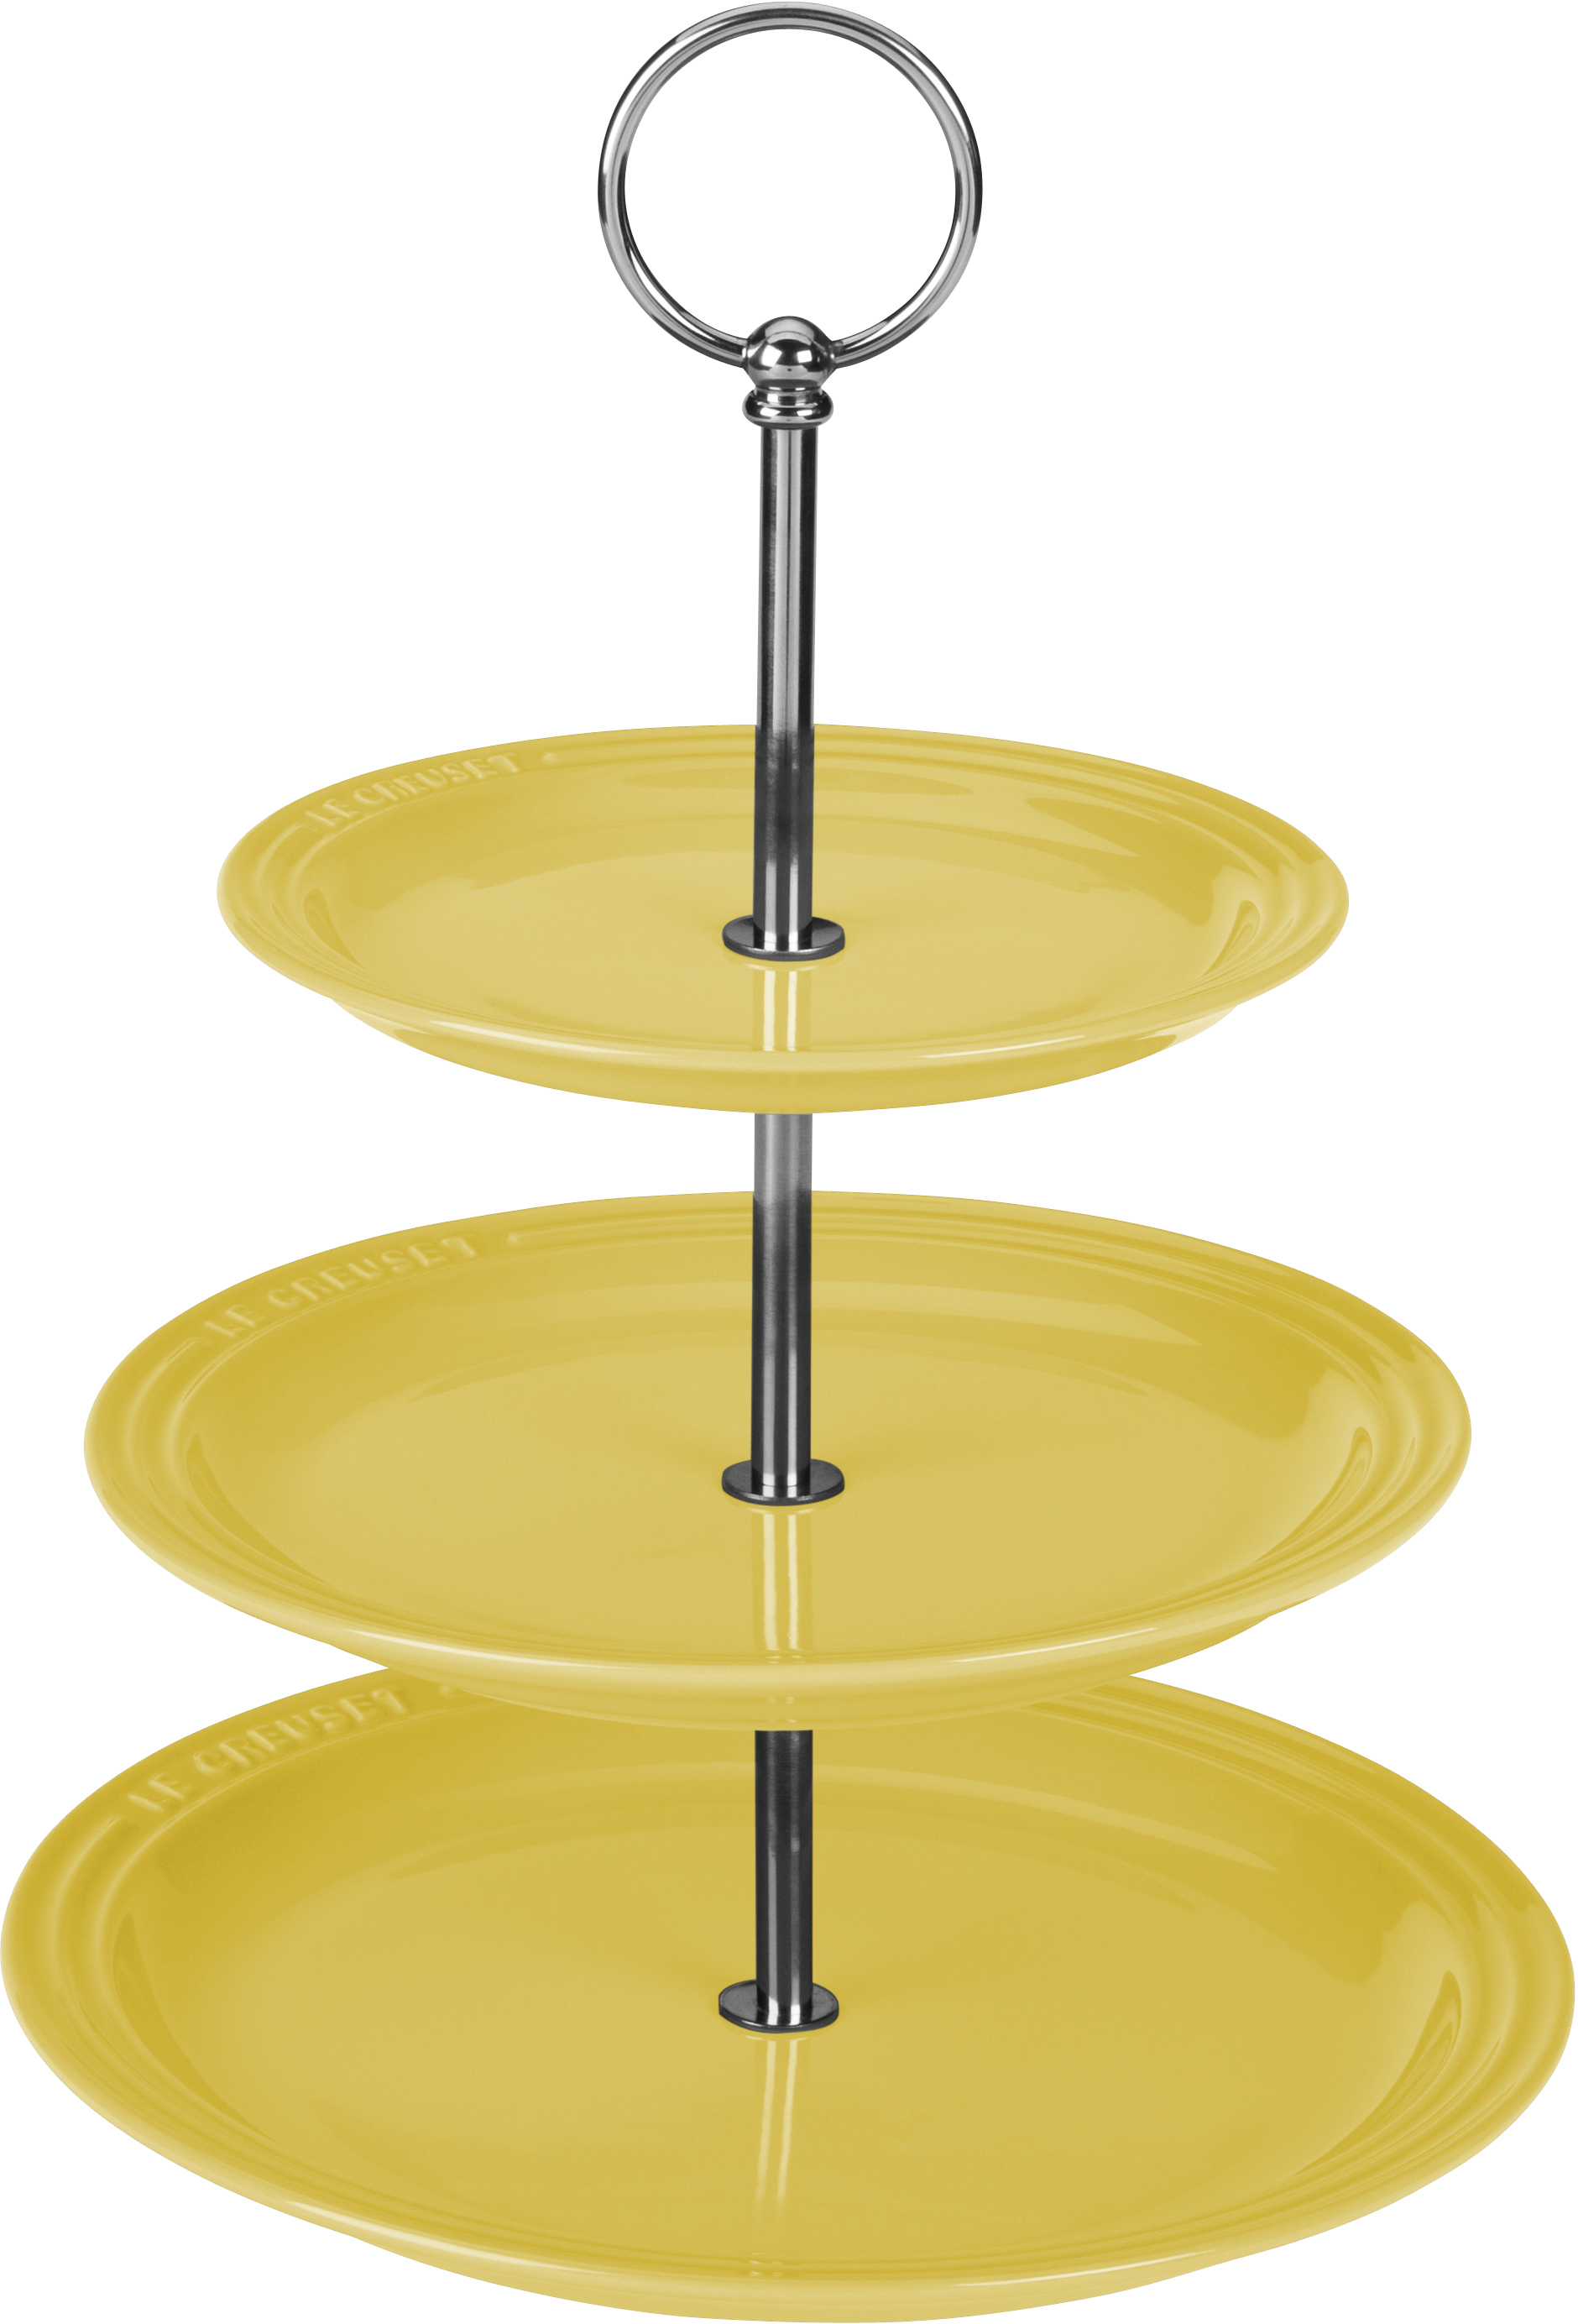 Le Creuset Soleil Yellow Stoneware 3 Tiered Server, 14.5 Inch